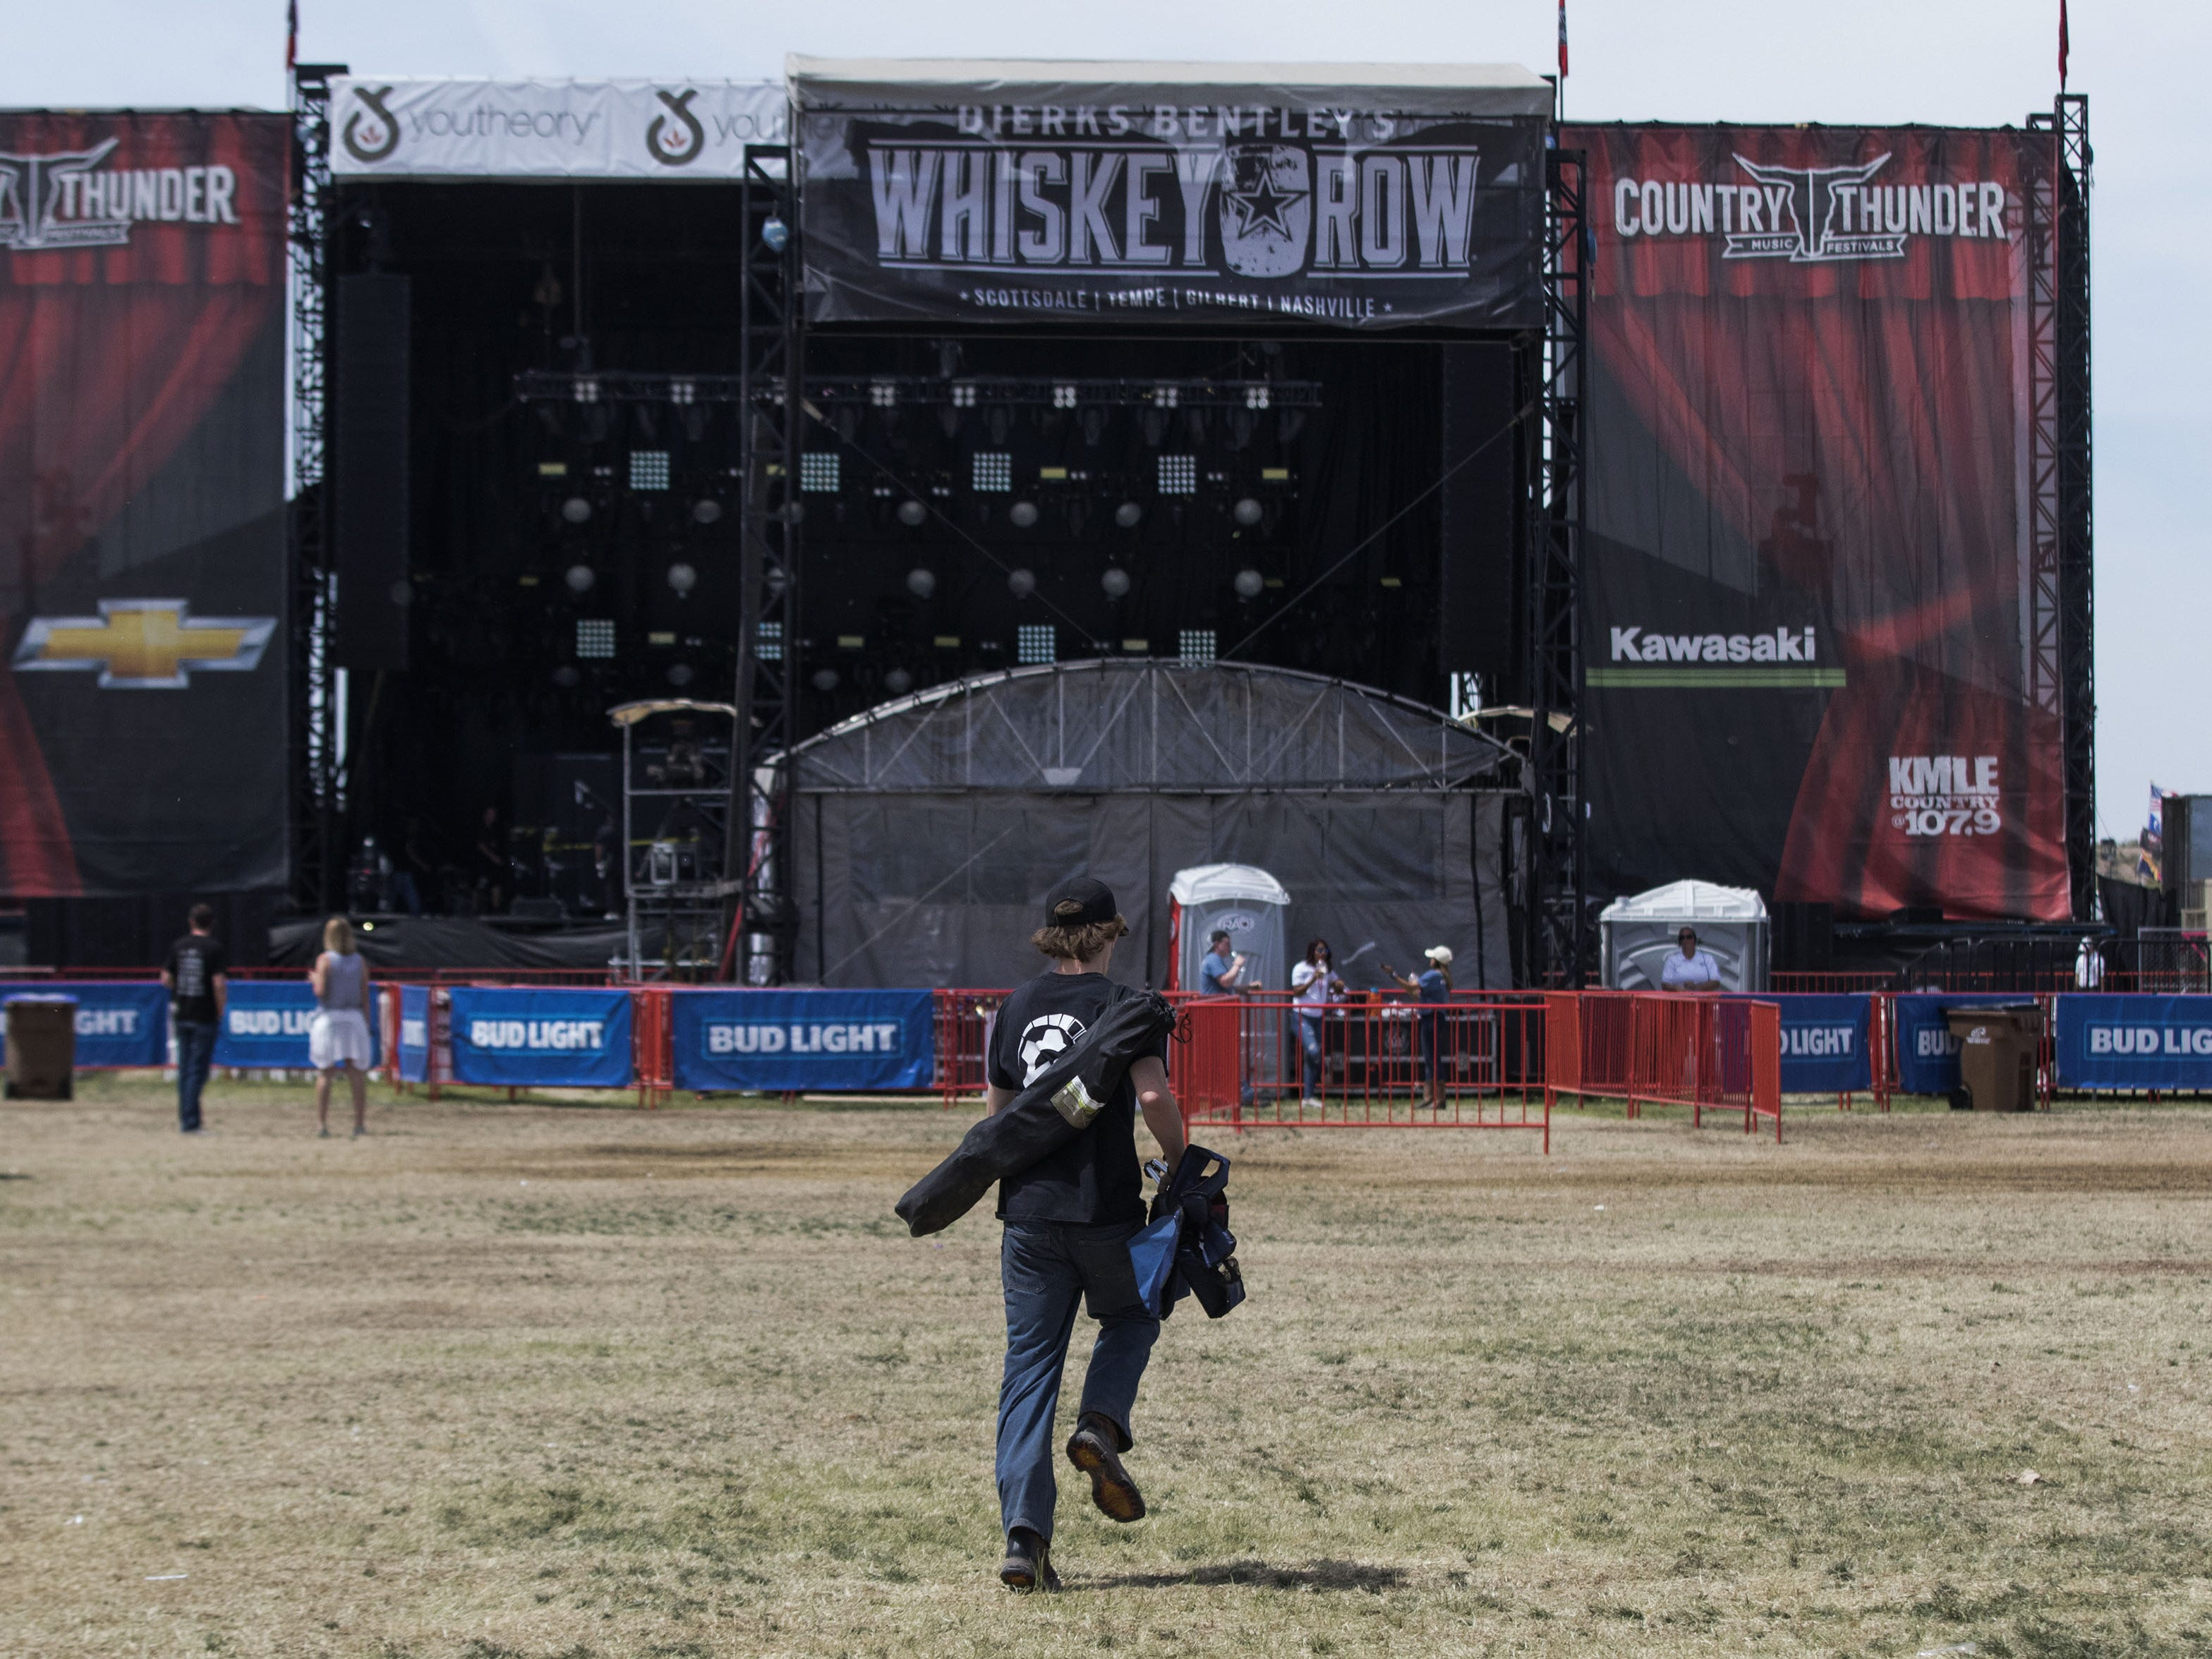 Just after the gates open, a person runs toward the front of the stage during Country Thunder Arizona on Sunday, April 14, 2019, in Florence, Arizona.